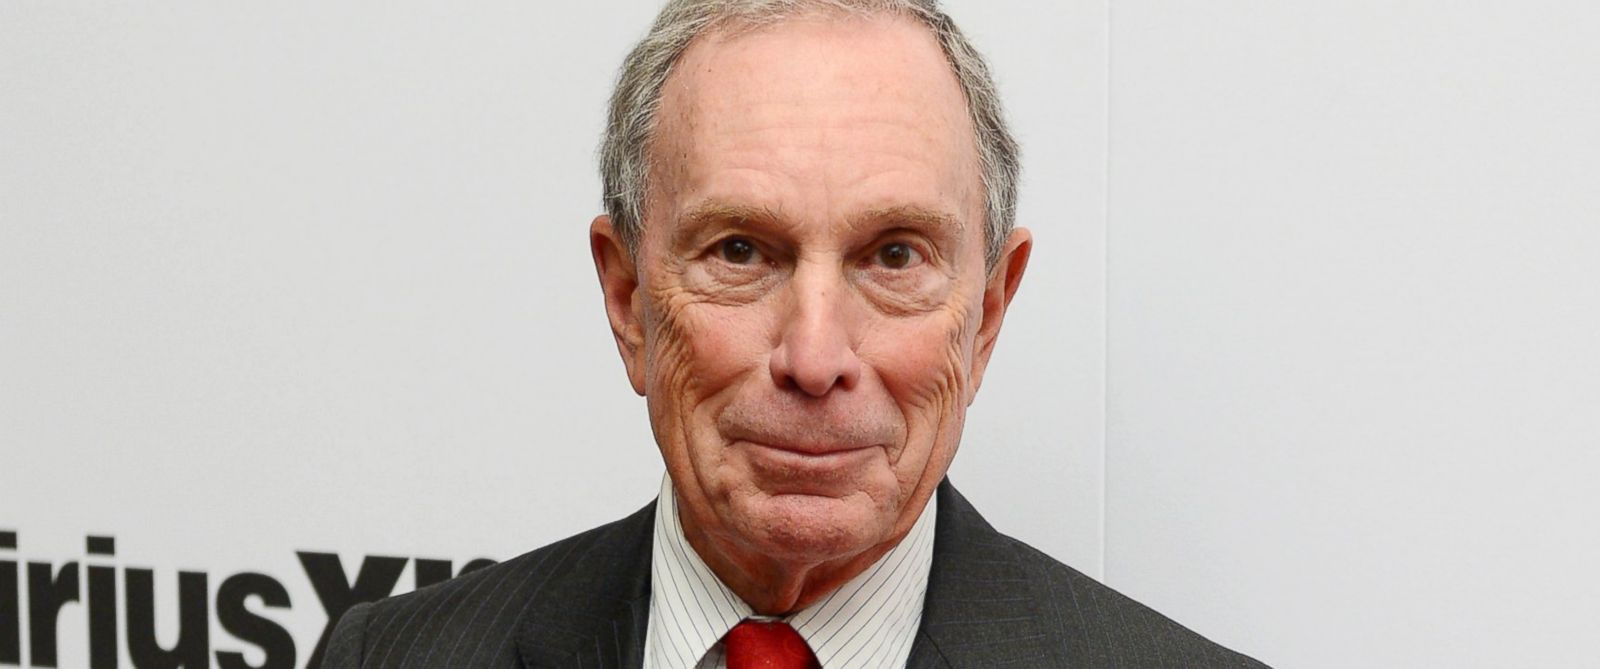 PHOTO: Michael Bloomberg attends Jazz at Lincoln Centers Ertegun Atrium and Ertegun Hall of Fame grand reopening at Jazz at Lincoln Center, Dec. 17, 2015 in New York City.